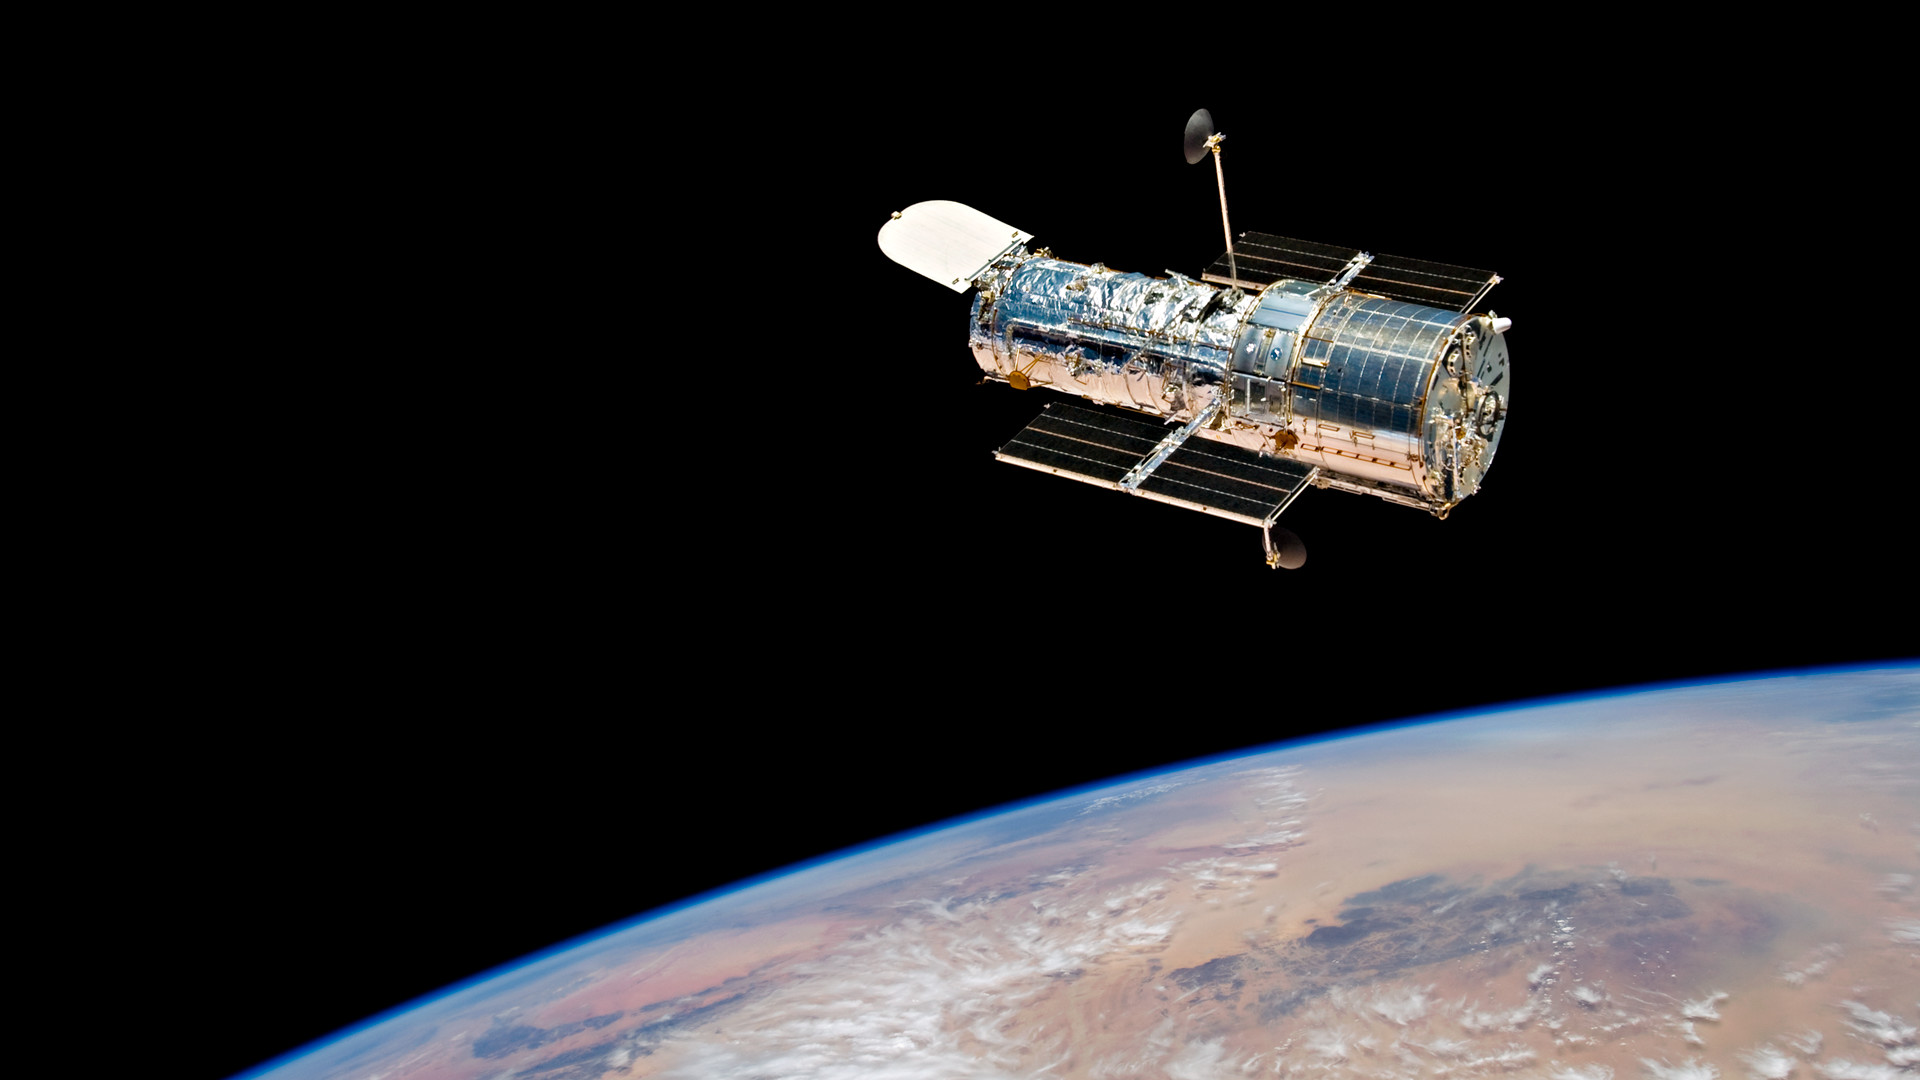 1920x1080 Photograph of Hubble Space Telescope in orbit